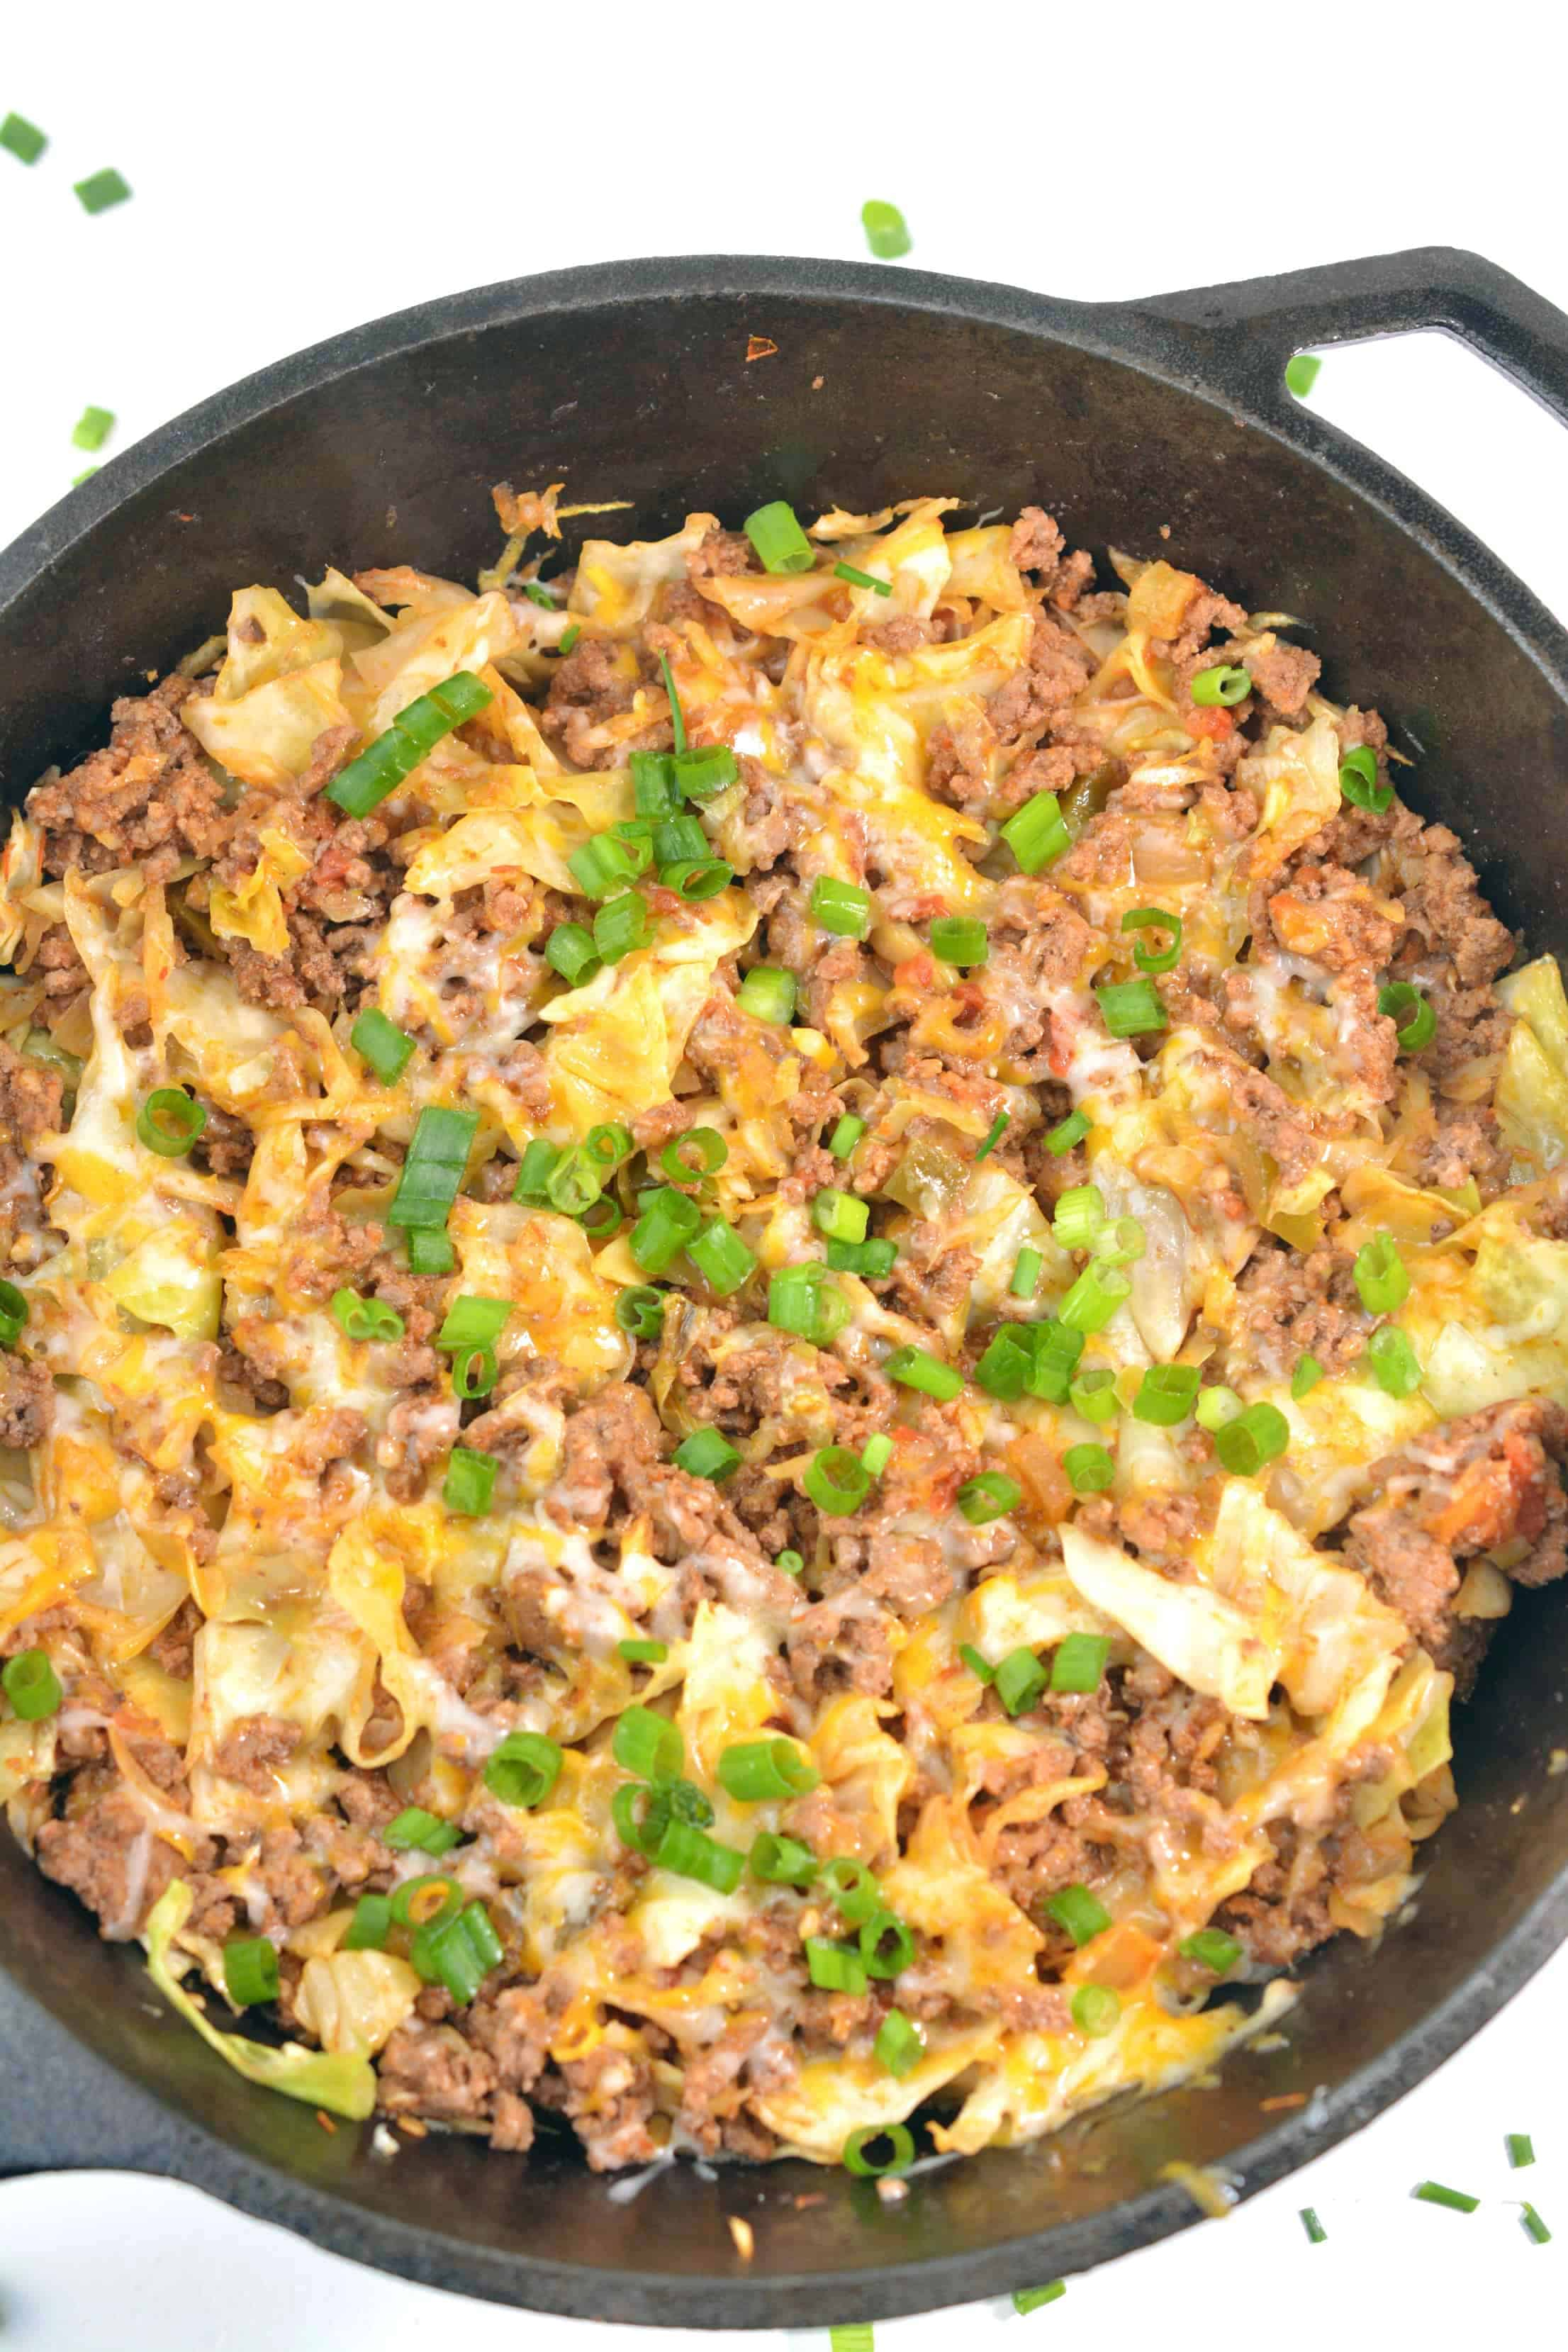 Taco Ground Beef and Cabbage Skillet Meal